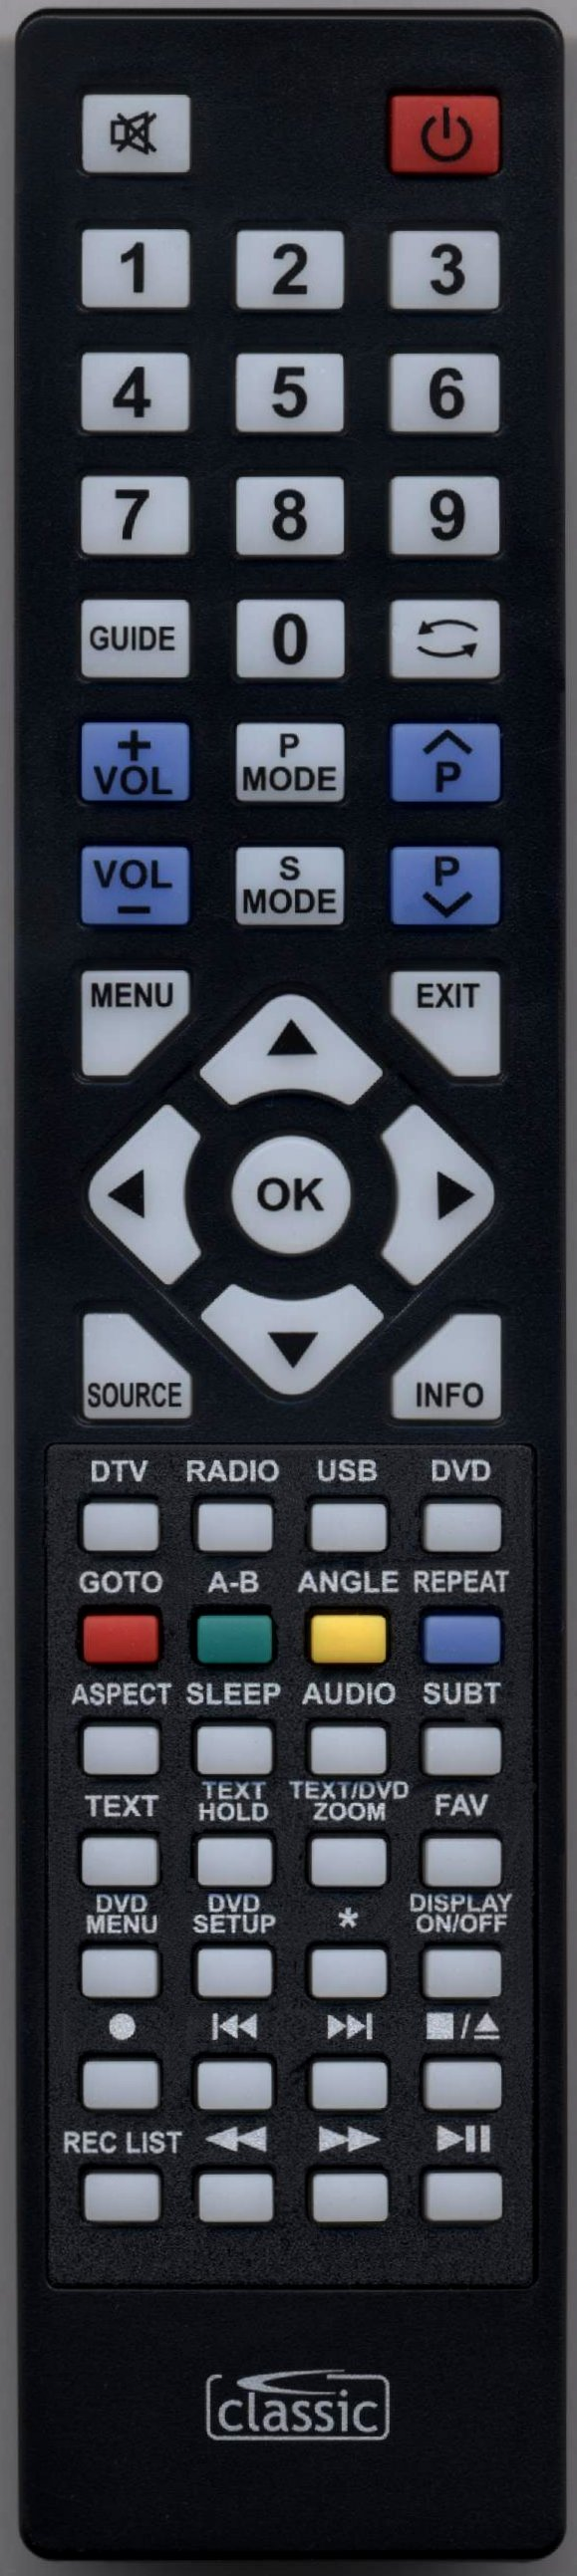 BLAUPUNKT 23/157I-GB-3B-HBKDUP-UK Remote Control Alternative